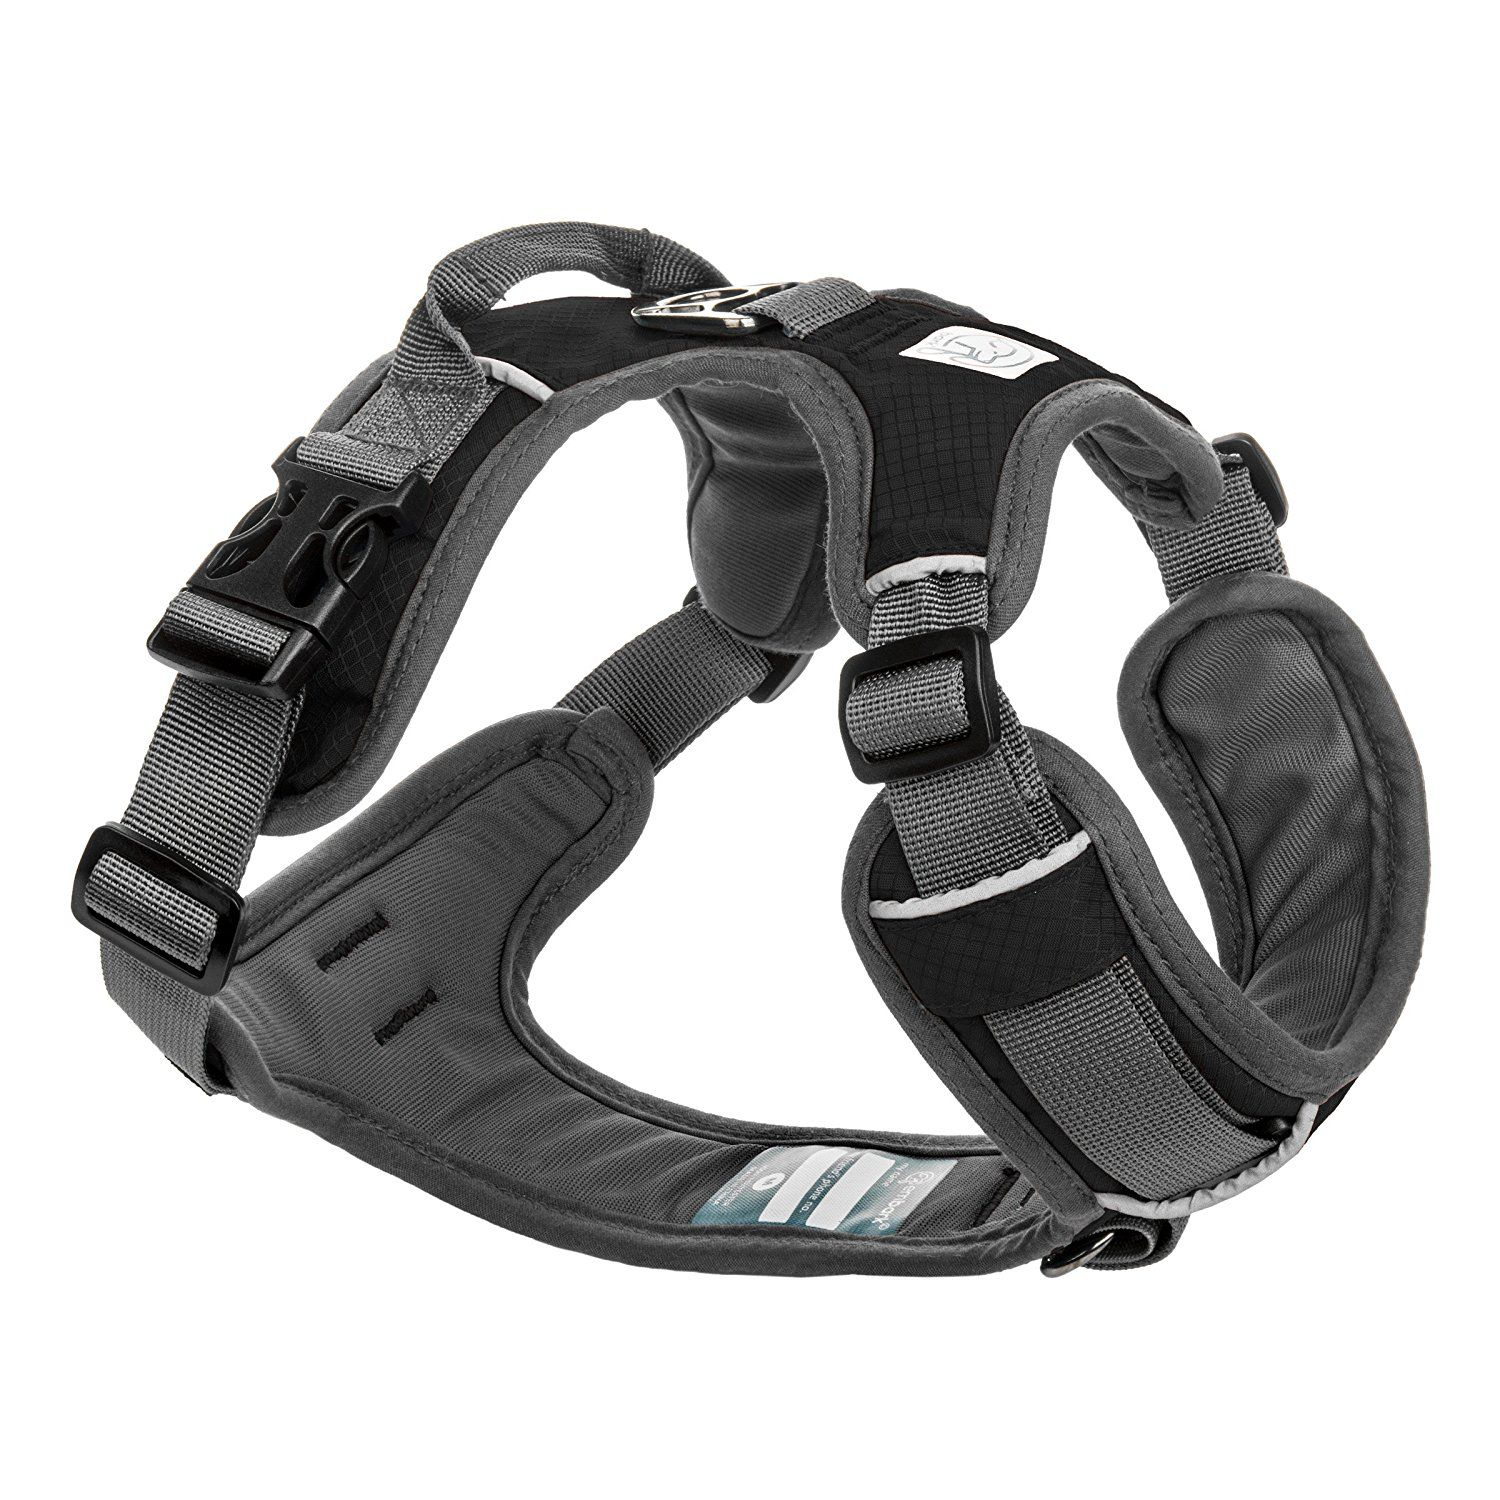 Embark active dog harness easy on and off with front and